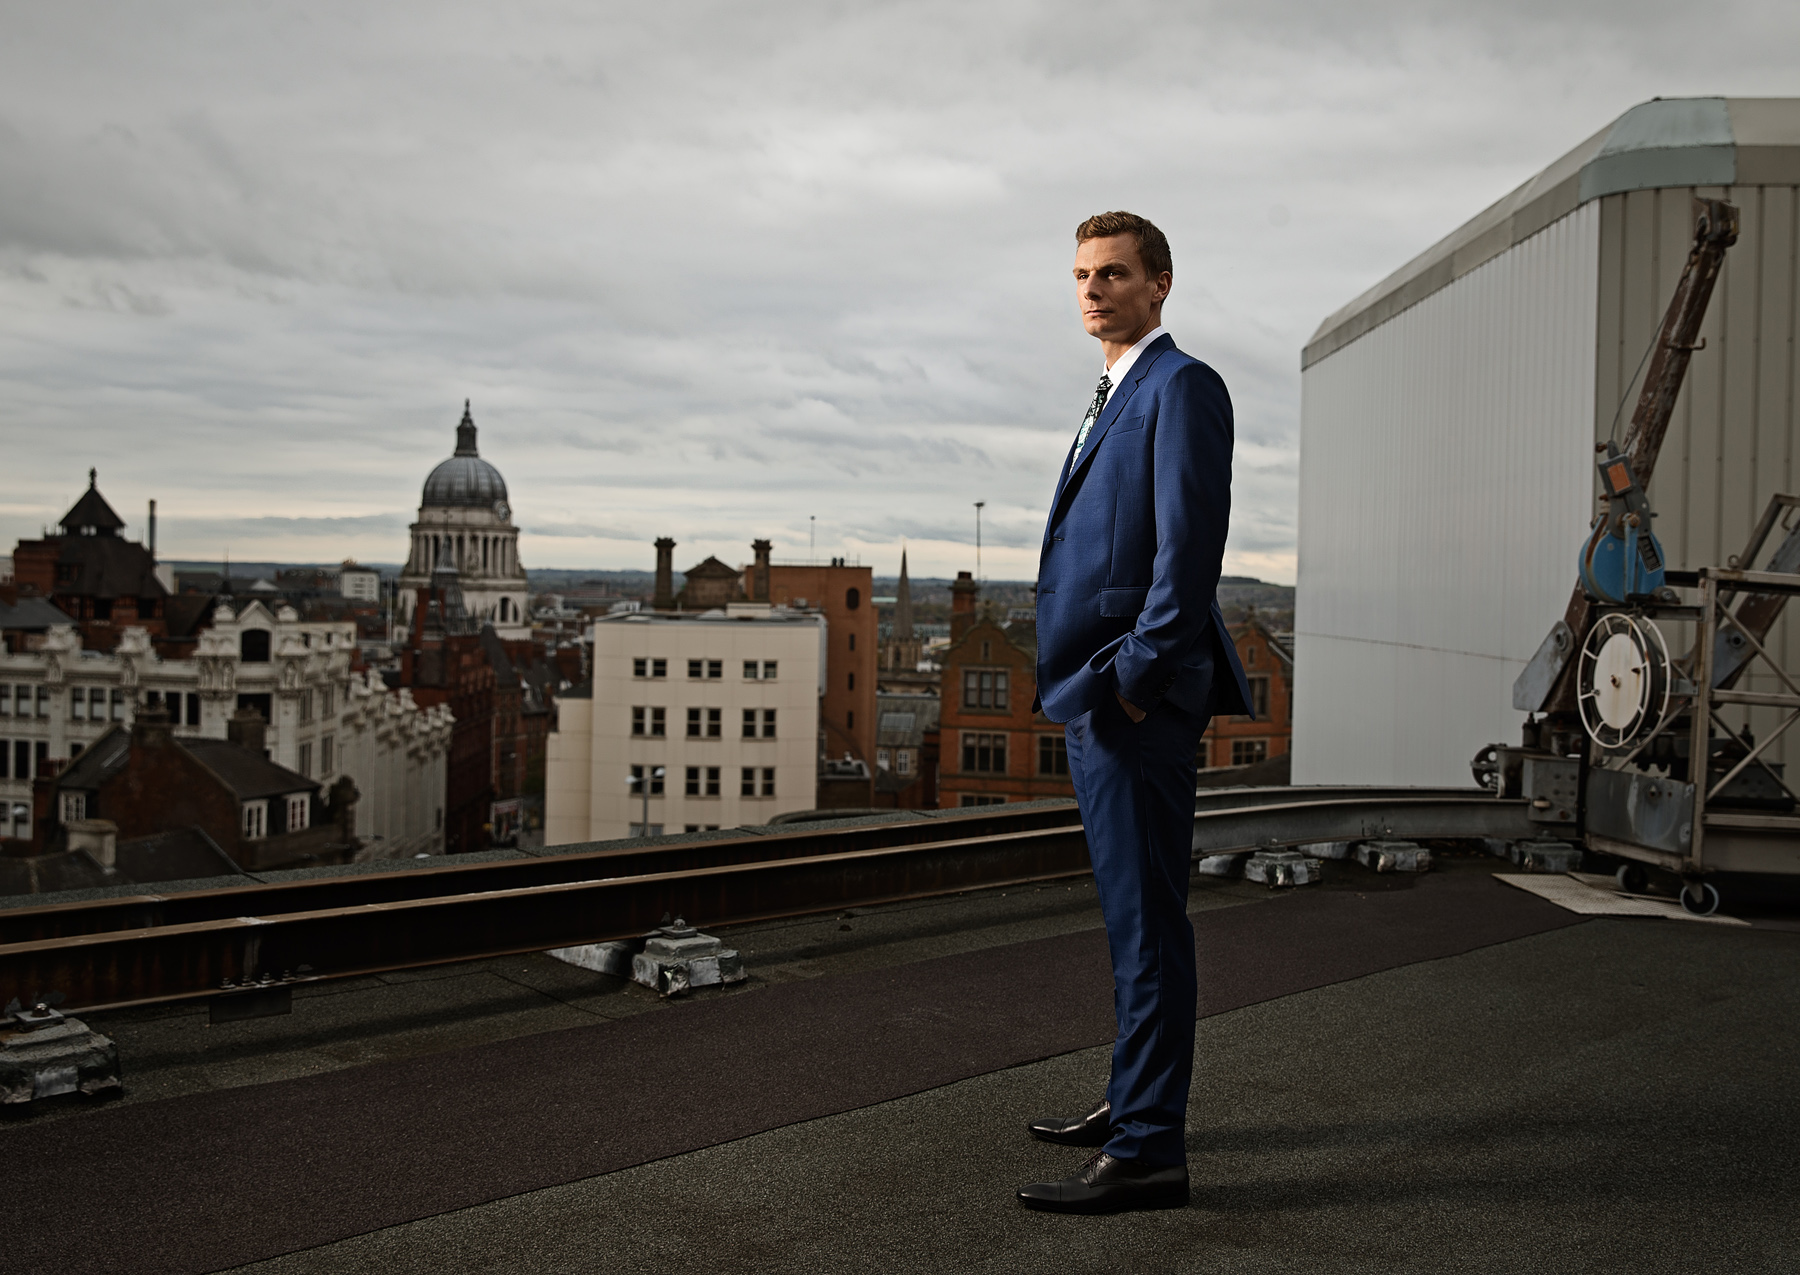 Nottingham city skyline photography for Paul Smith fashion by Karl Bratby